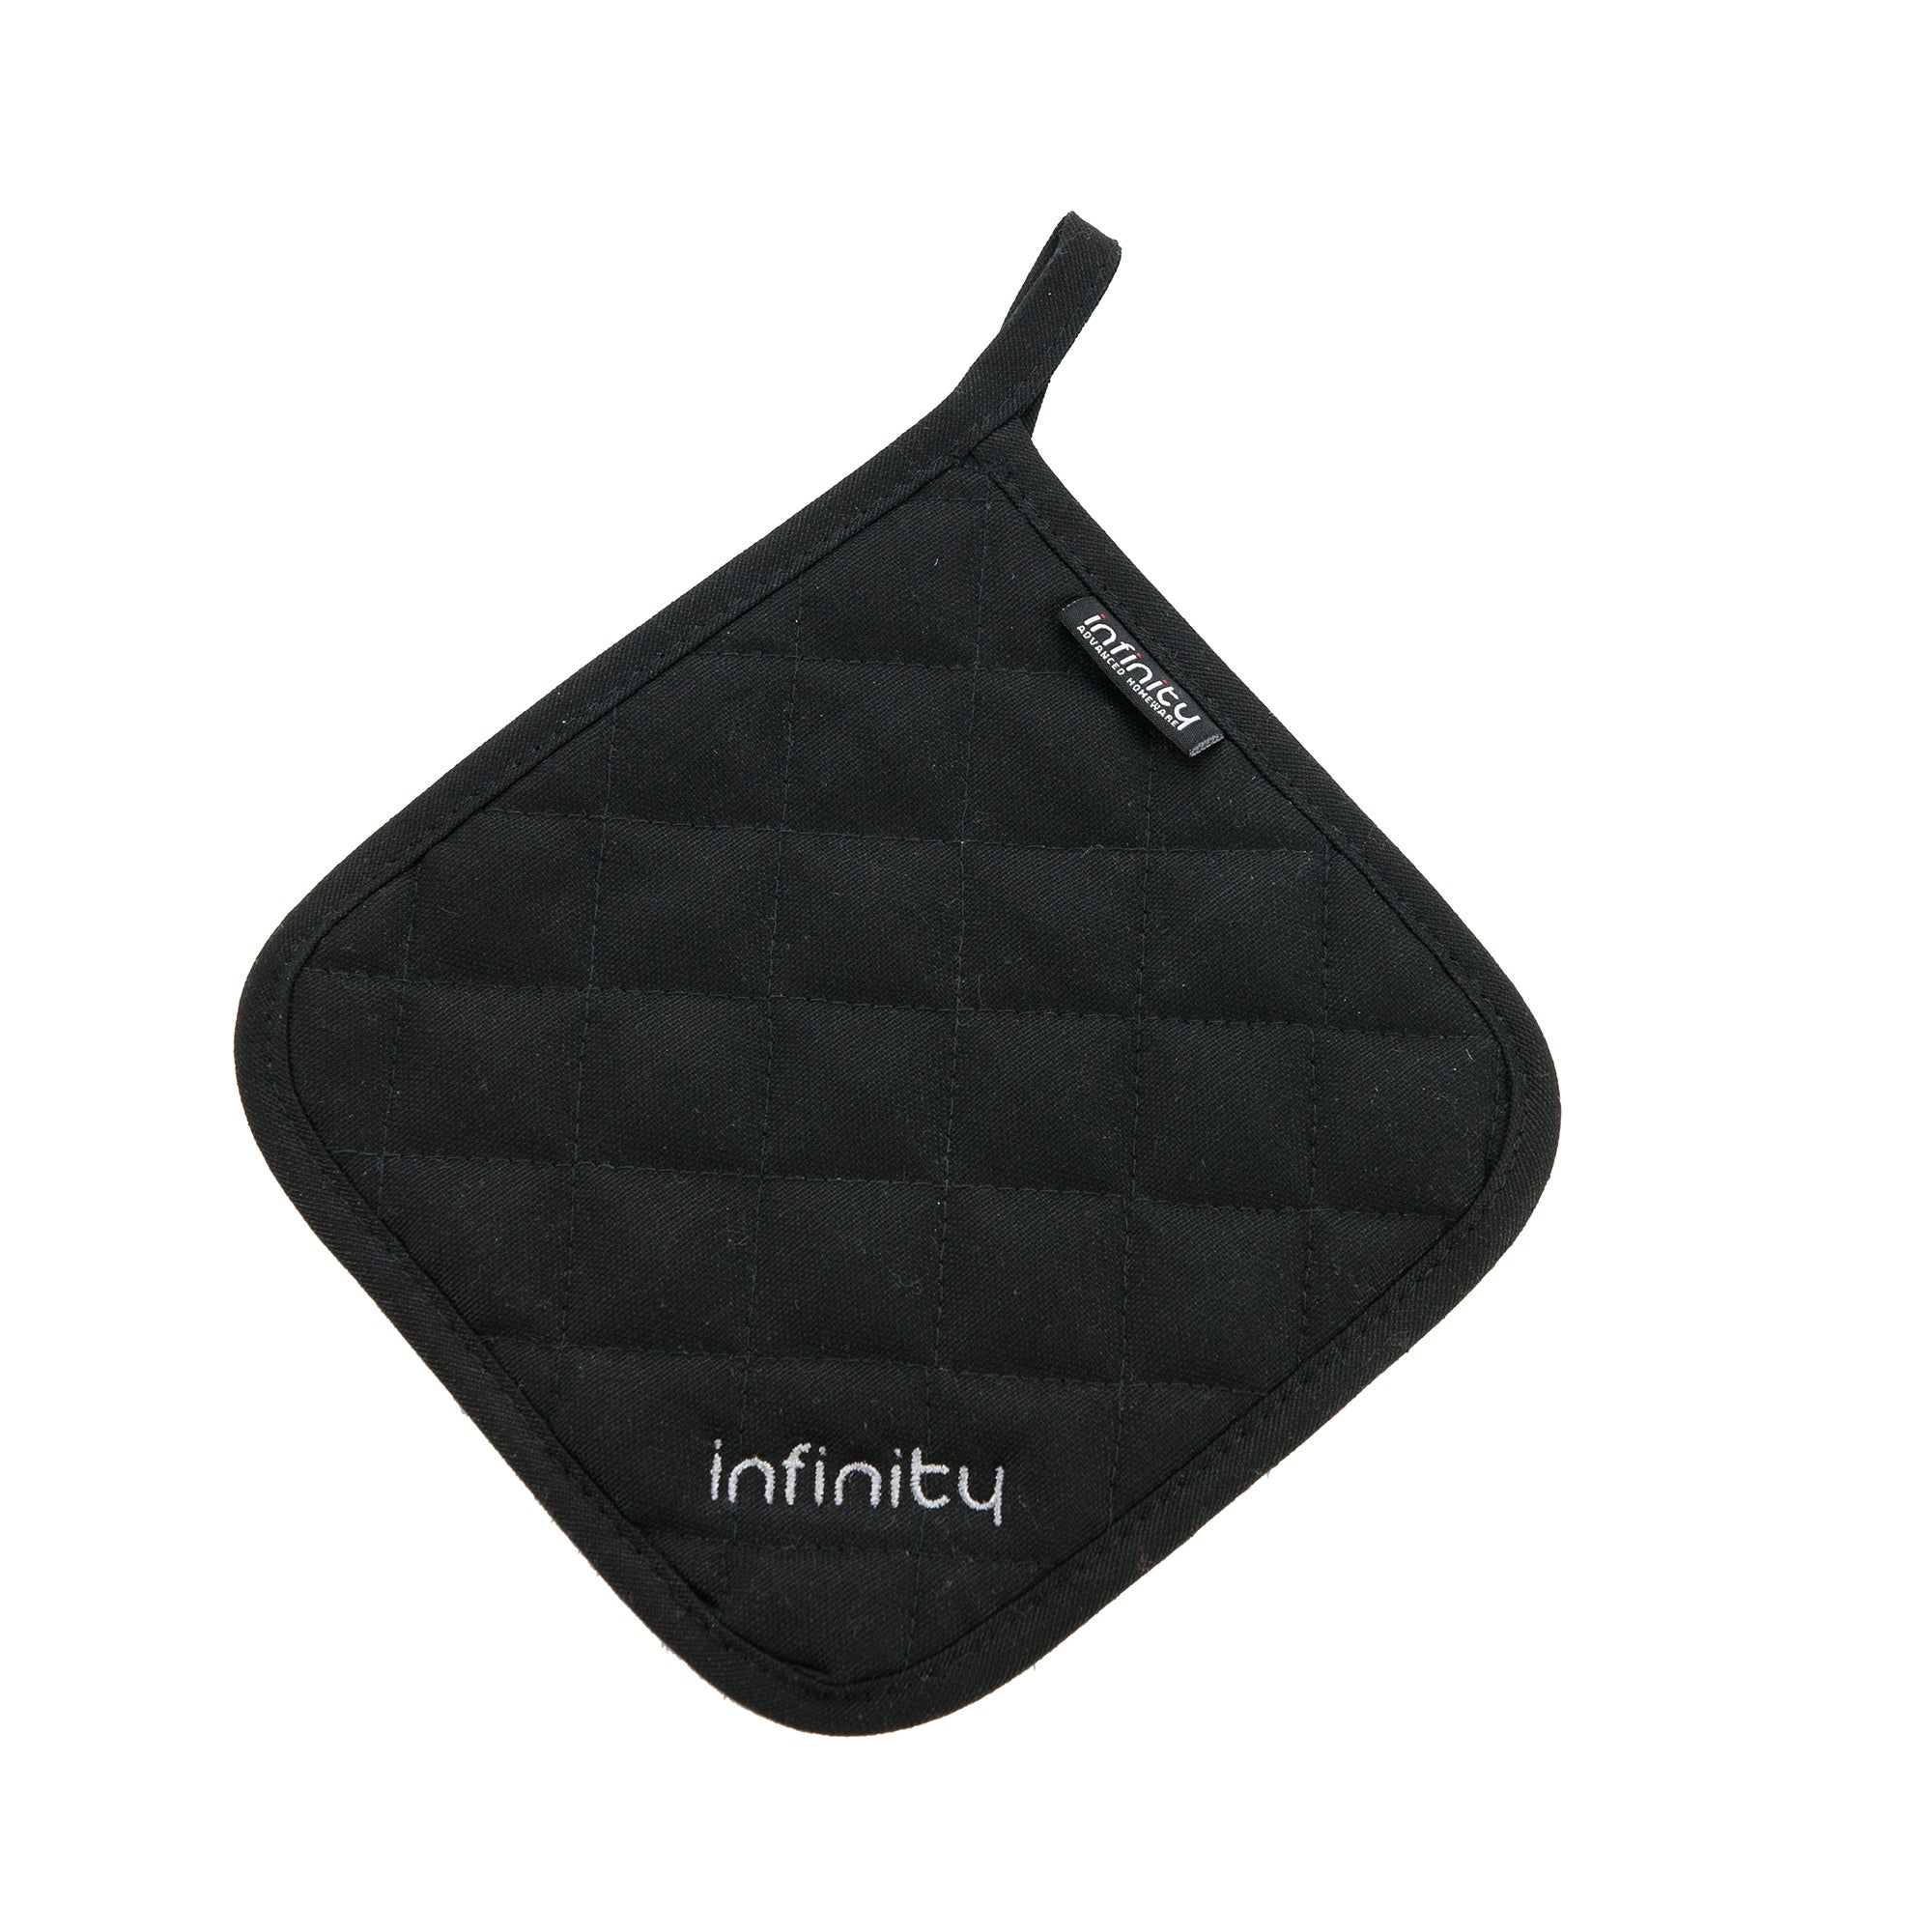 Cookshop Infinity Black Pot Holder